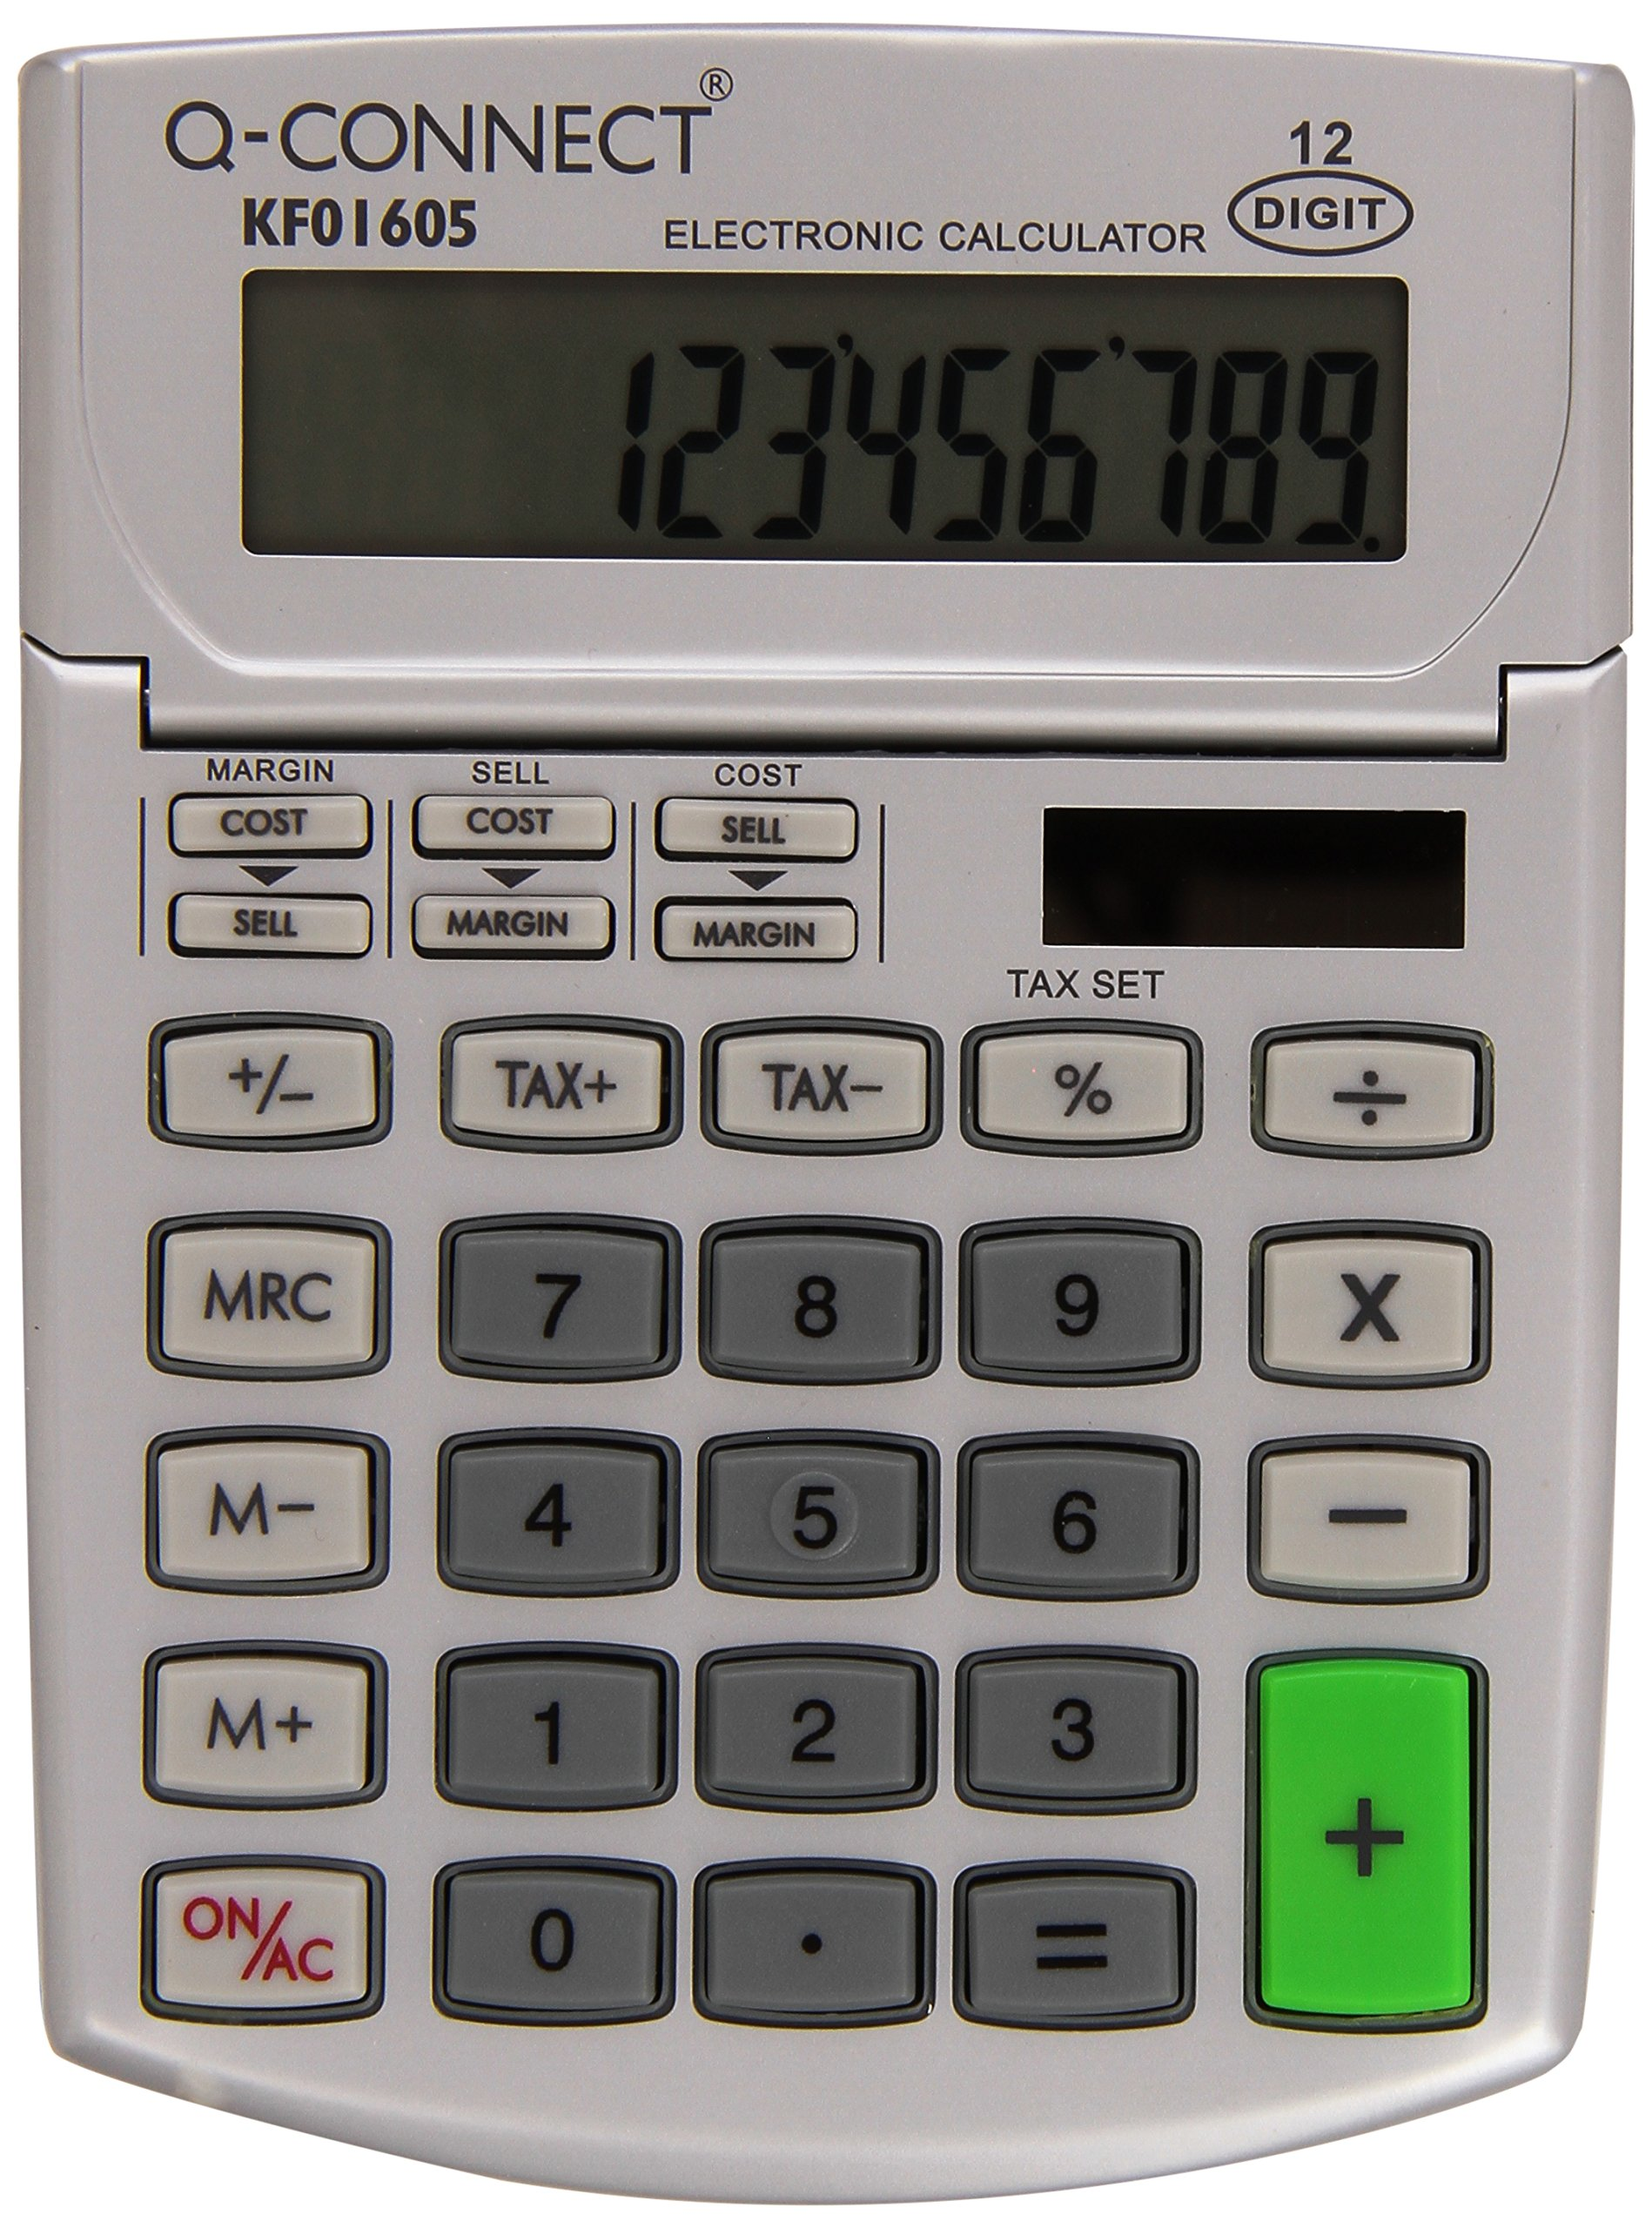 Q CONNECT CALCULATOR SEMI DESK 12 DIGIT by Q-Connect